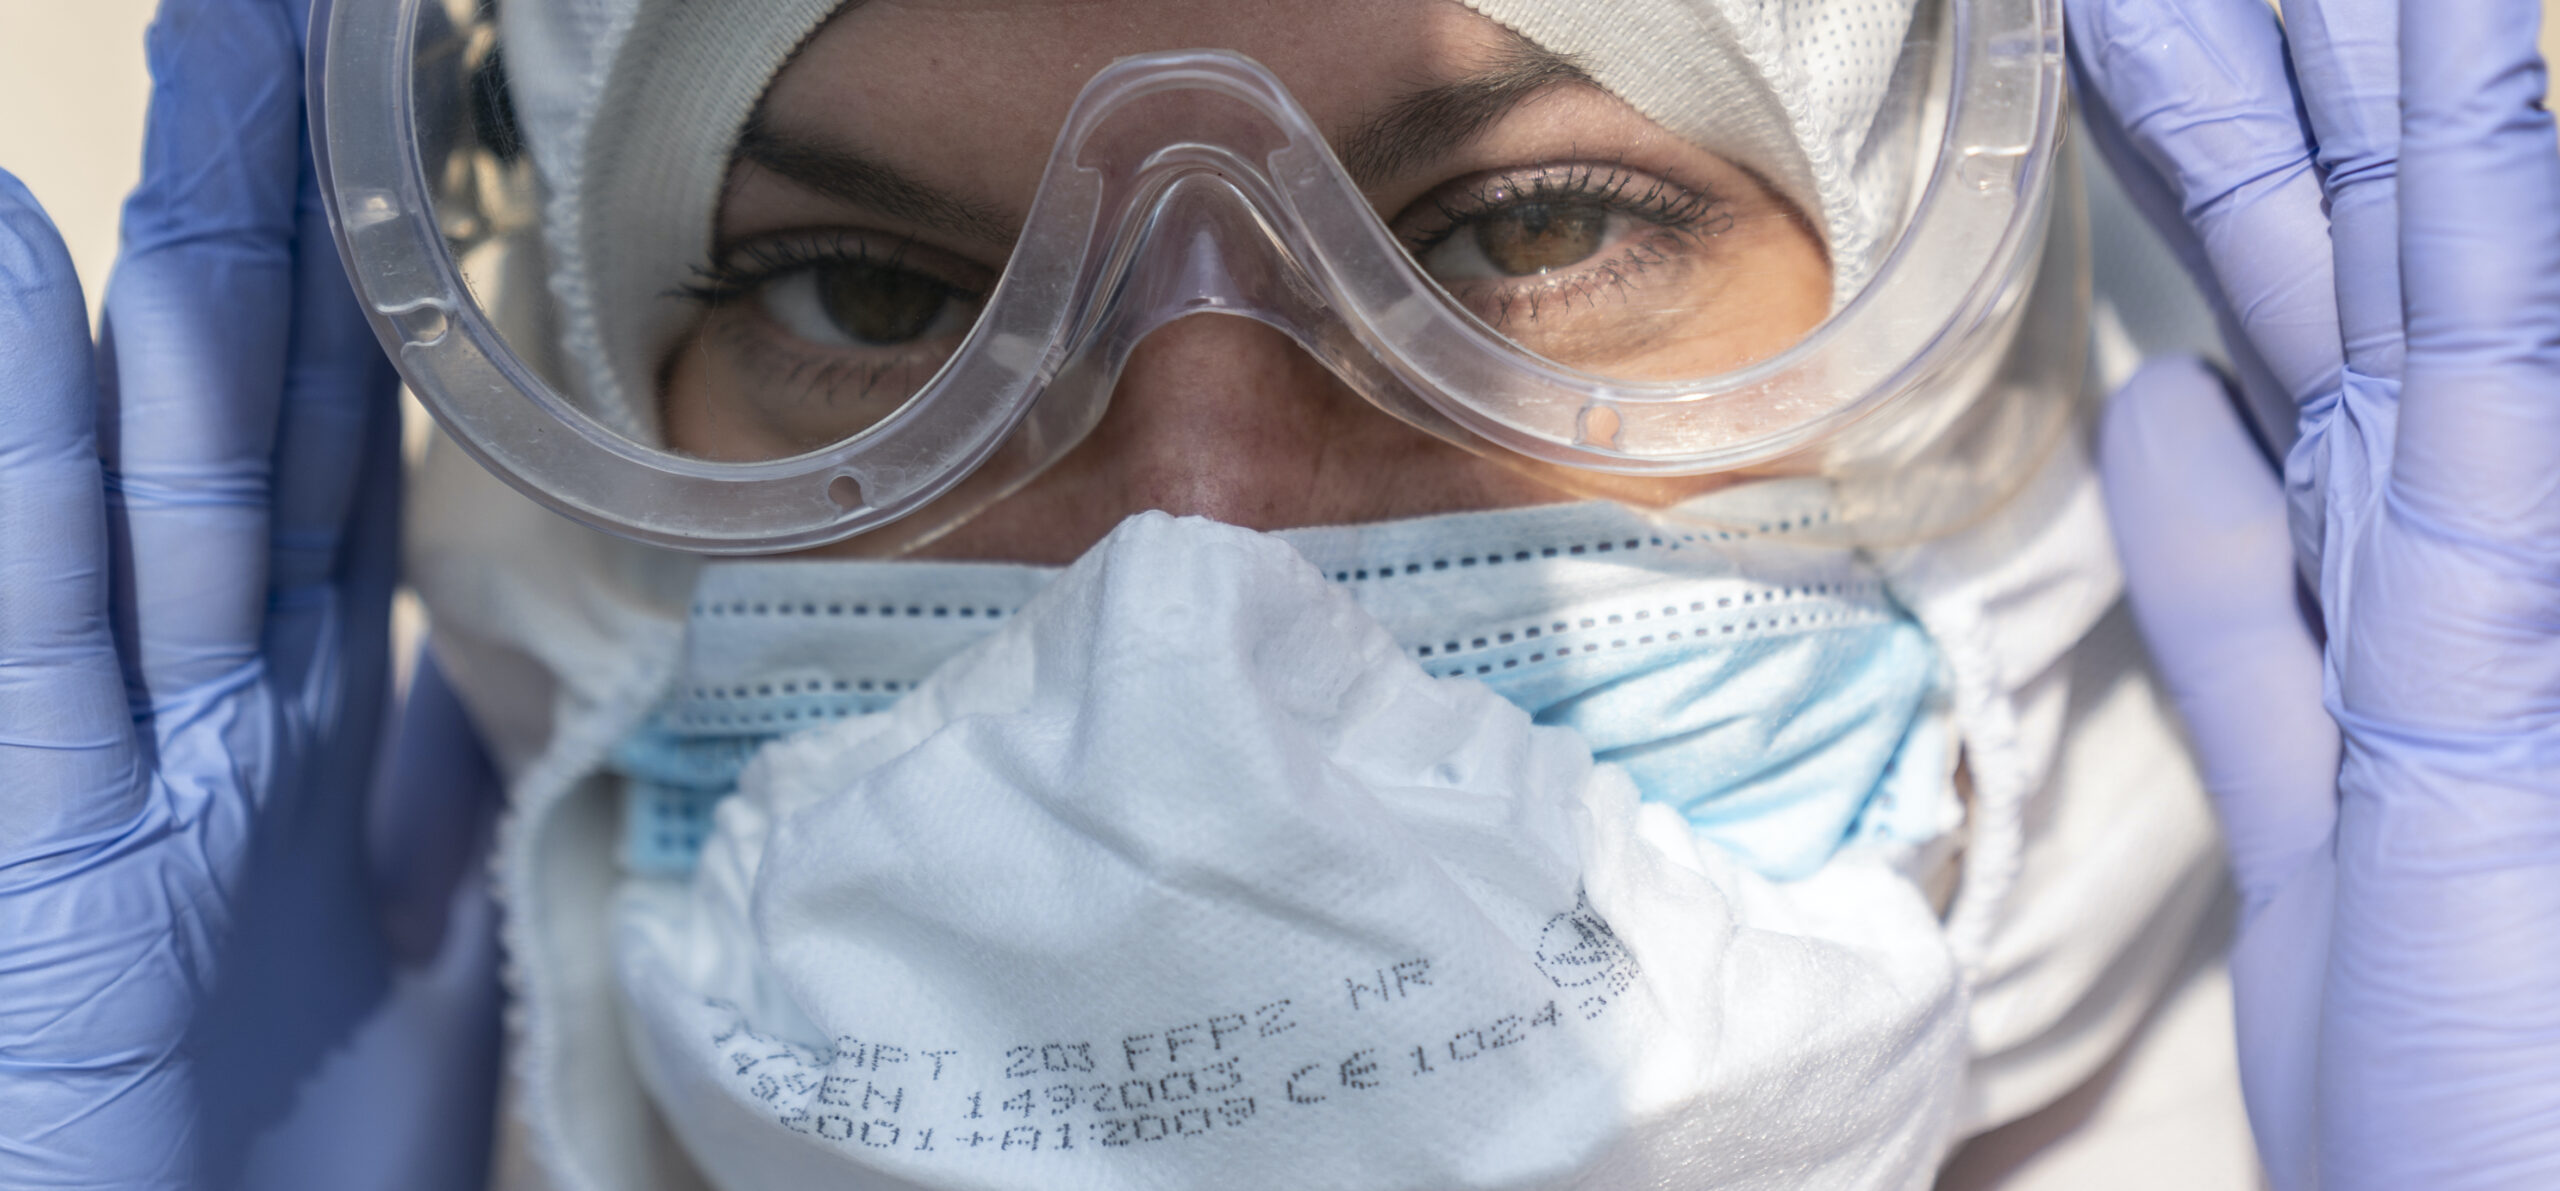 Ukrainian woman uses underwear as face mask after service denied at post office: report